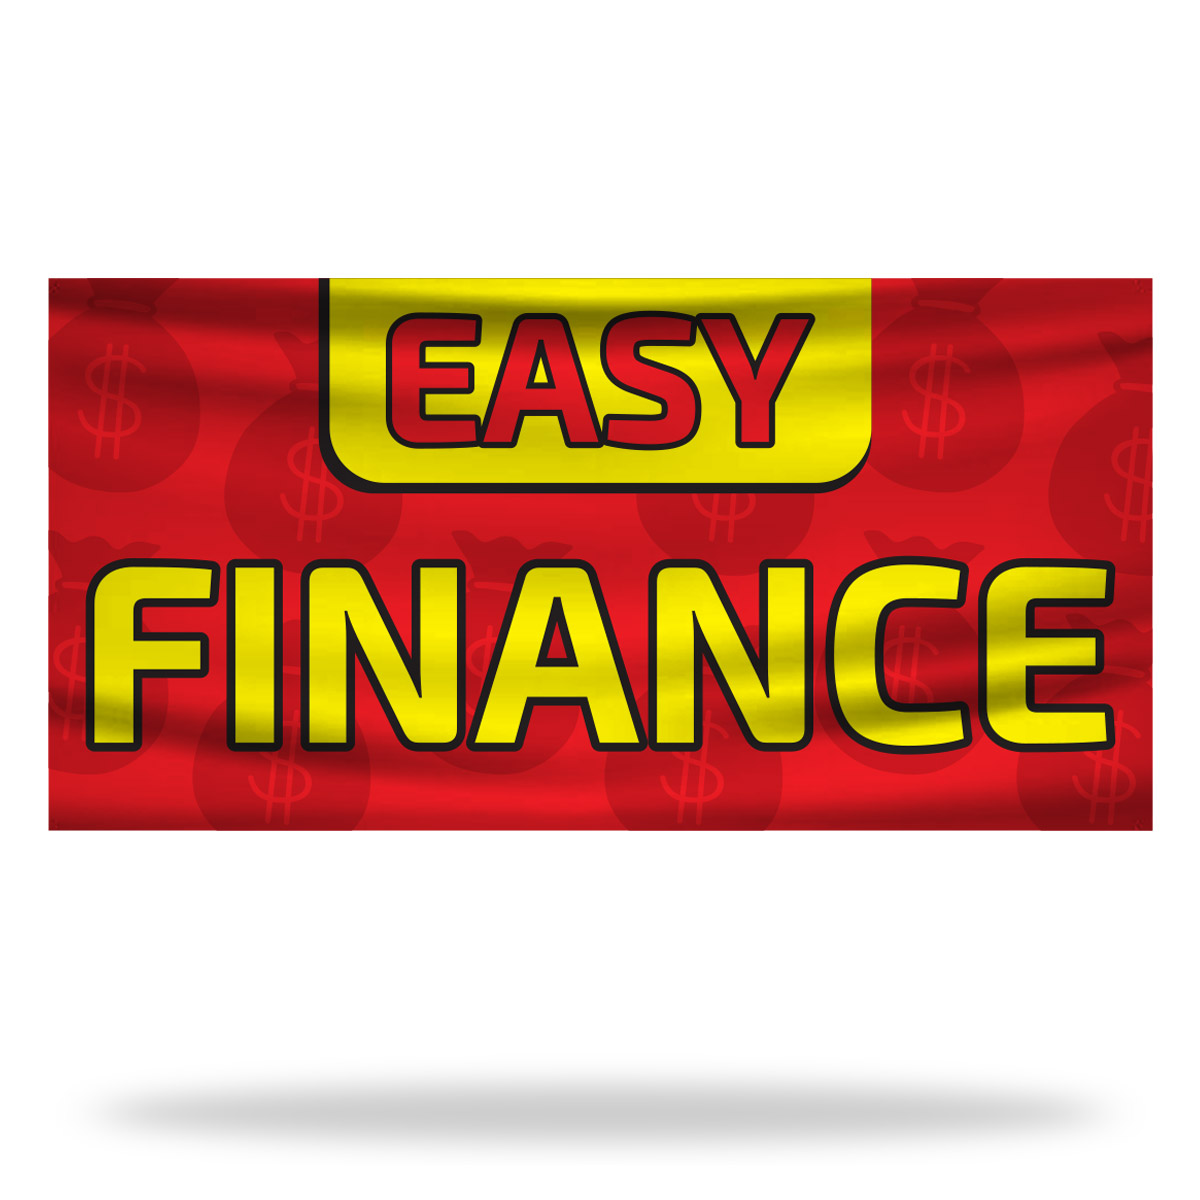 Financing Flags & Banners Design 02